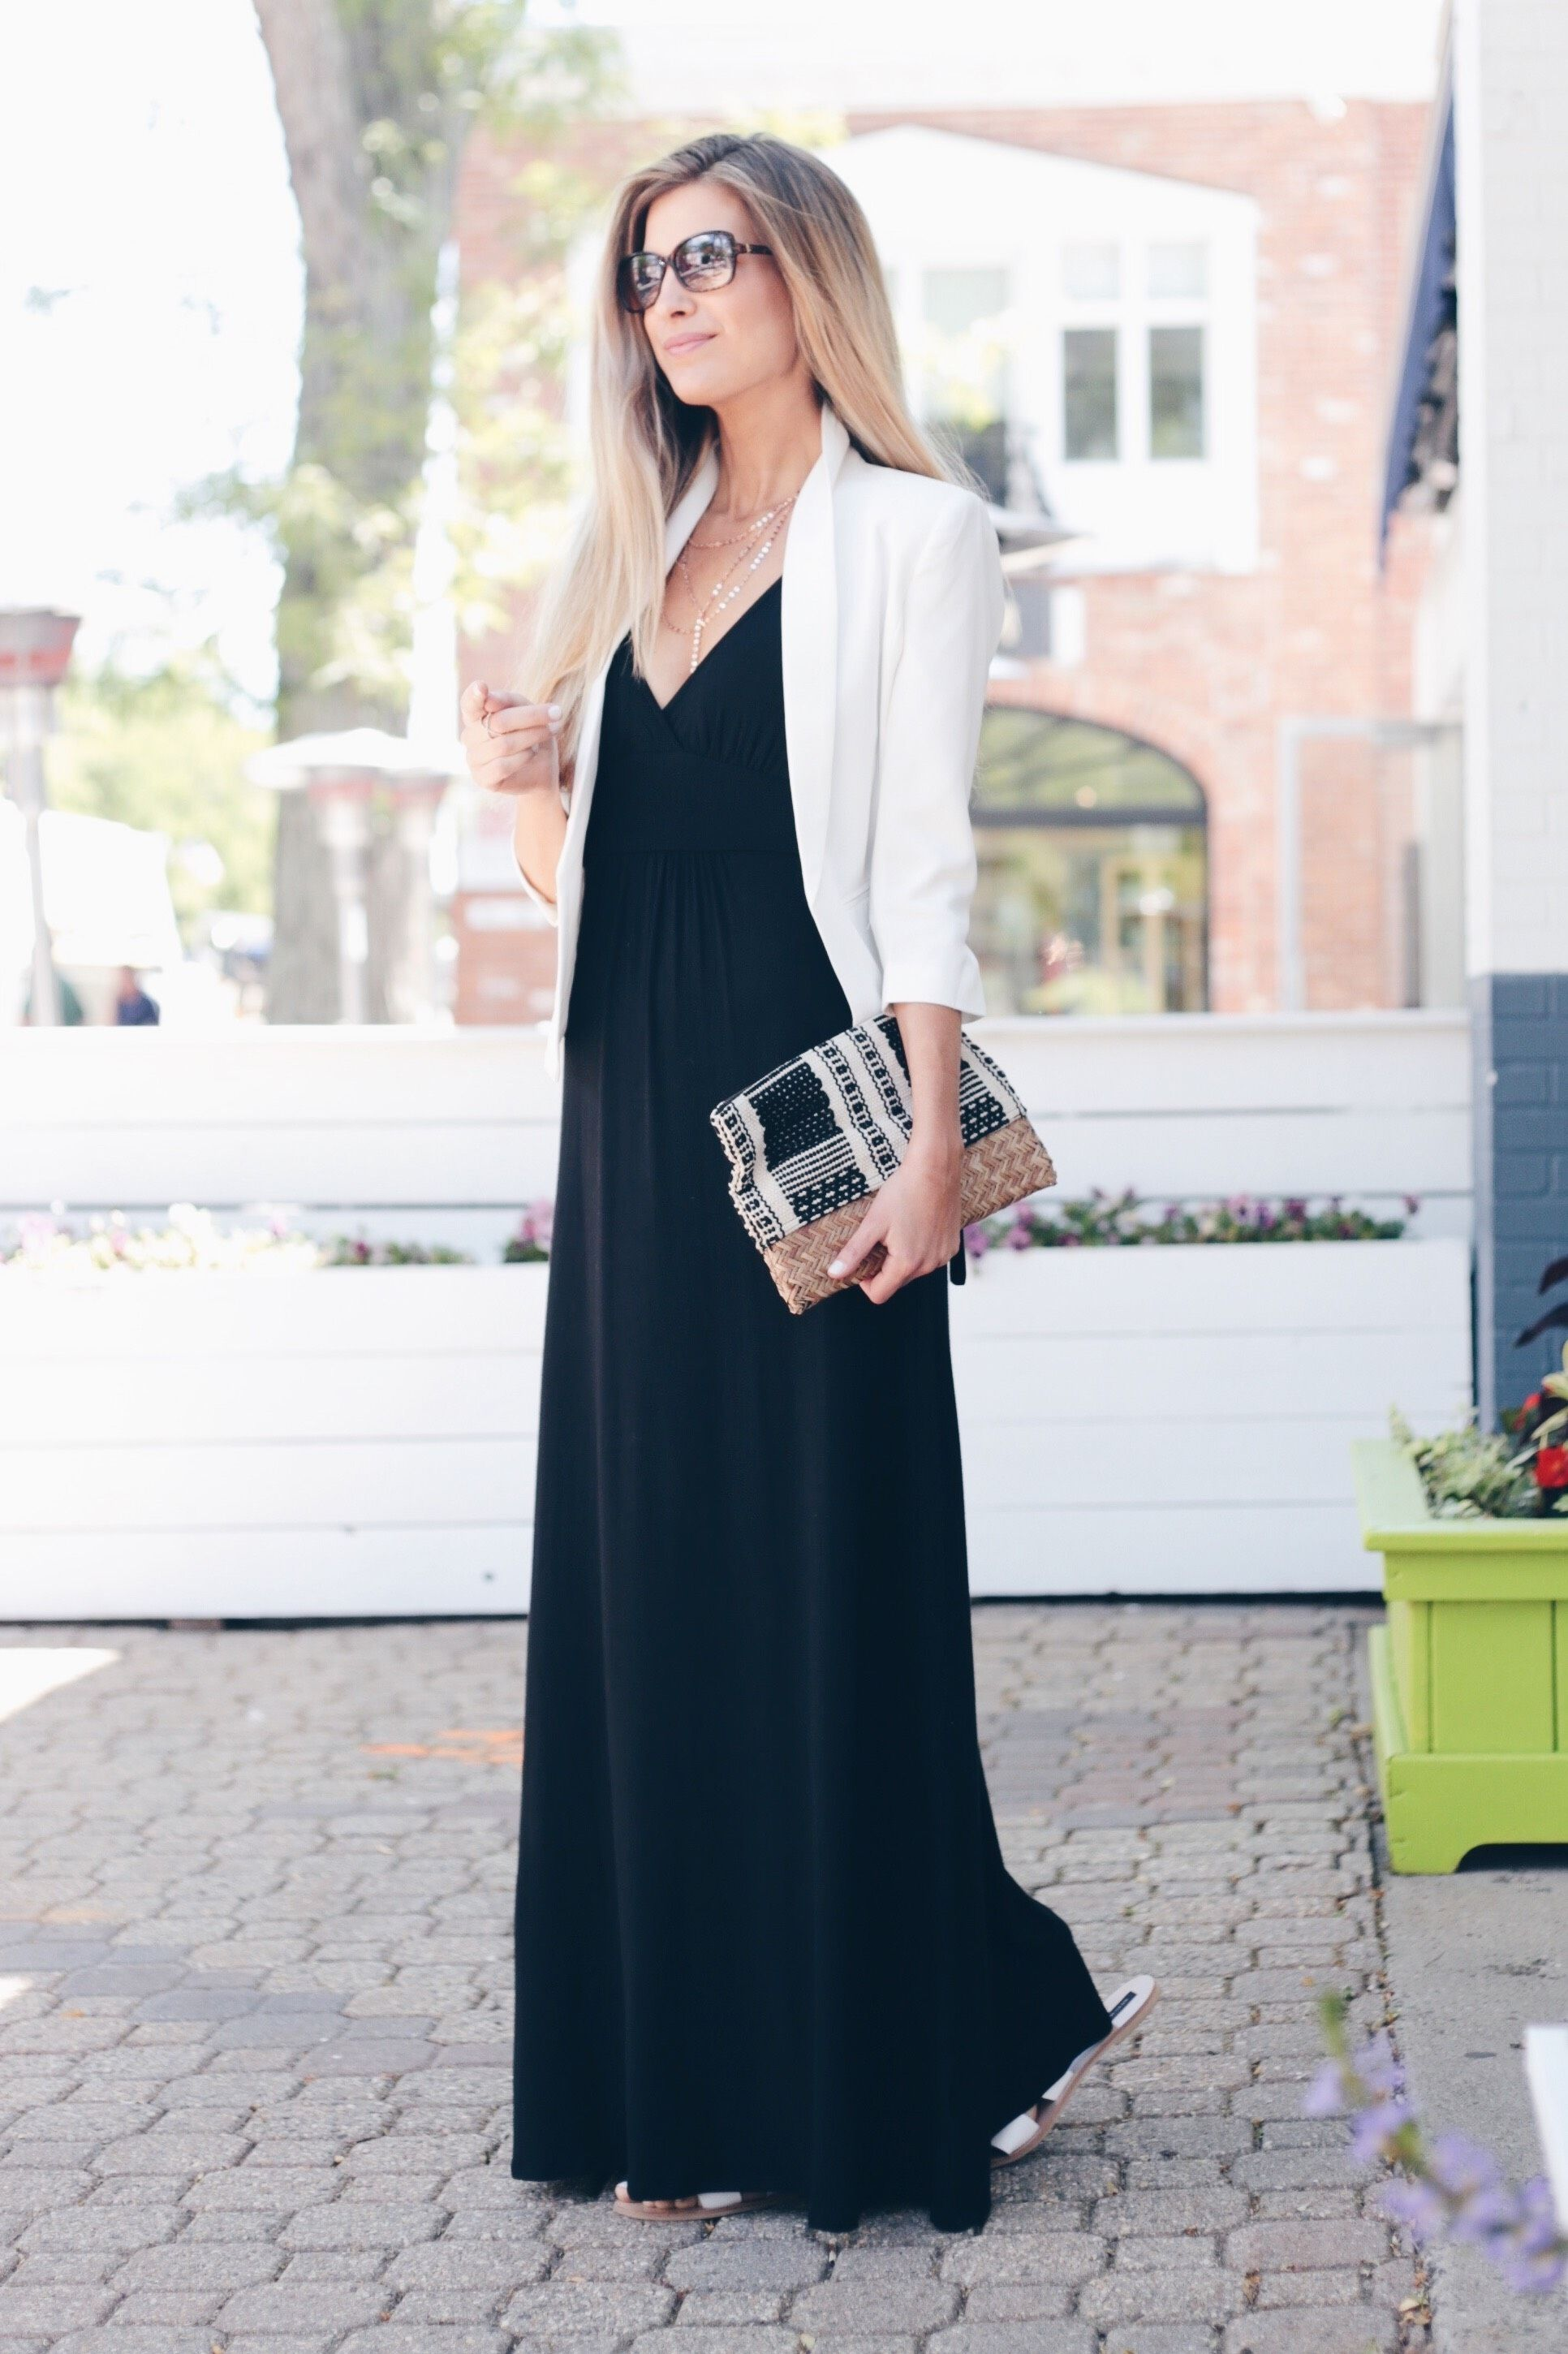 Three Ways To Style A Maxi Dress New England Style Blog Maxi Outfits Black Maxi Dress Black Maxi Dress Outfit [ 2900 x 1932 Pixel ]